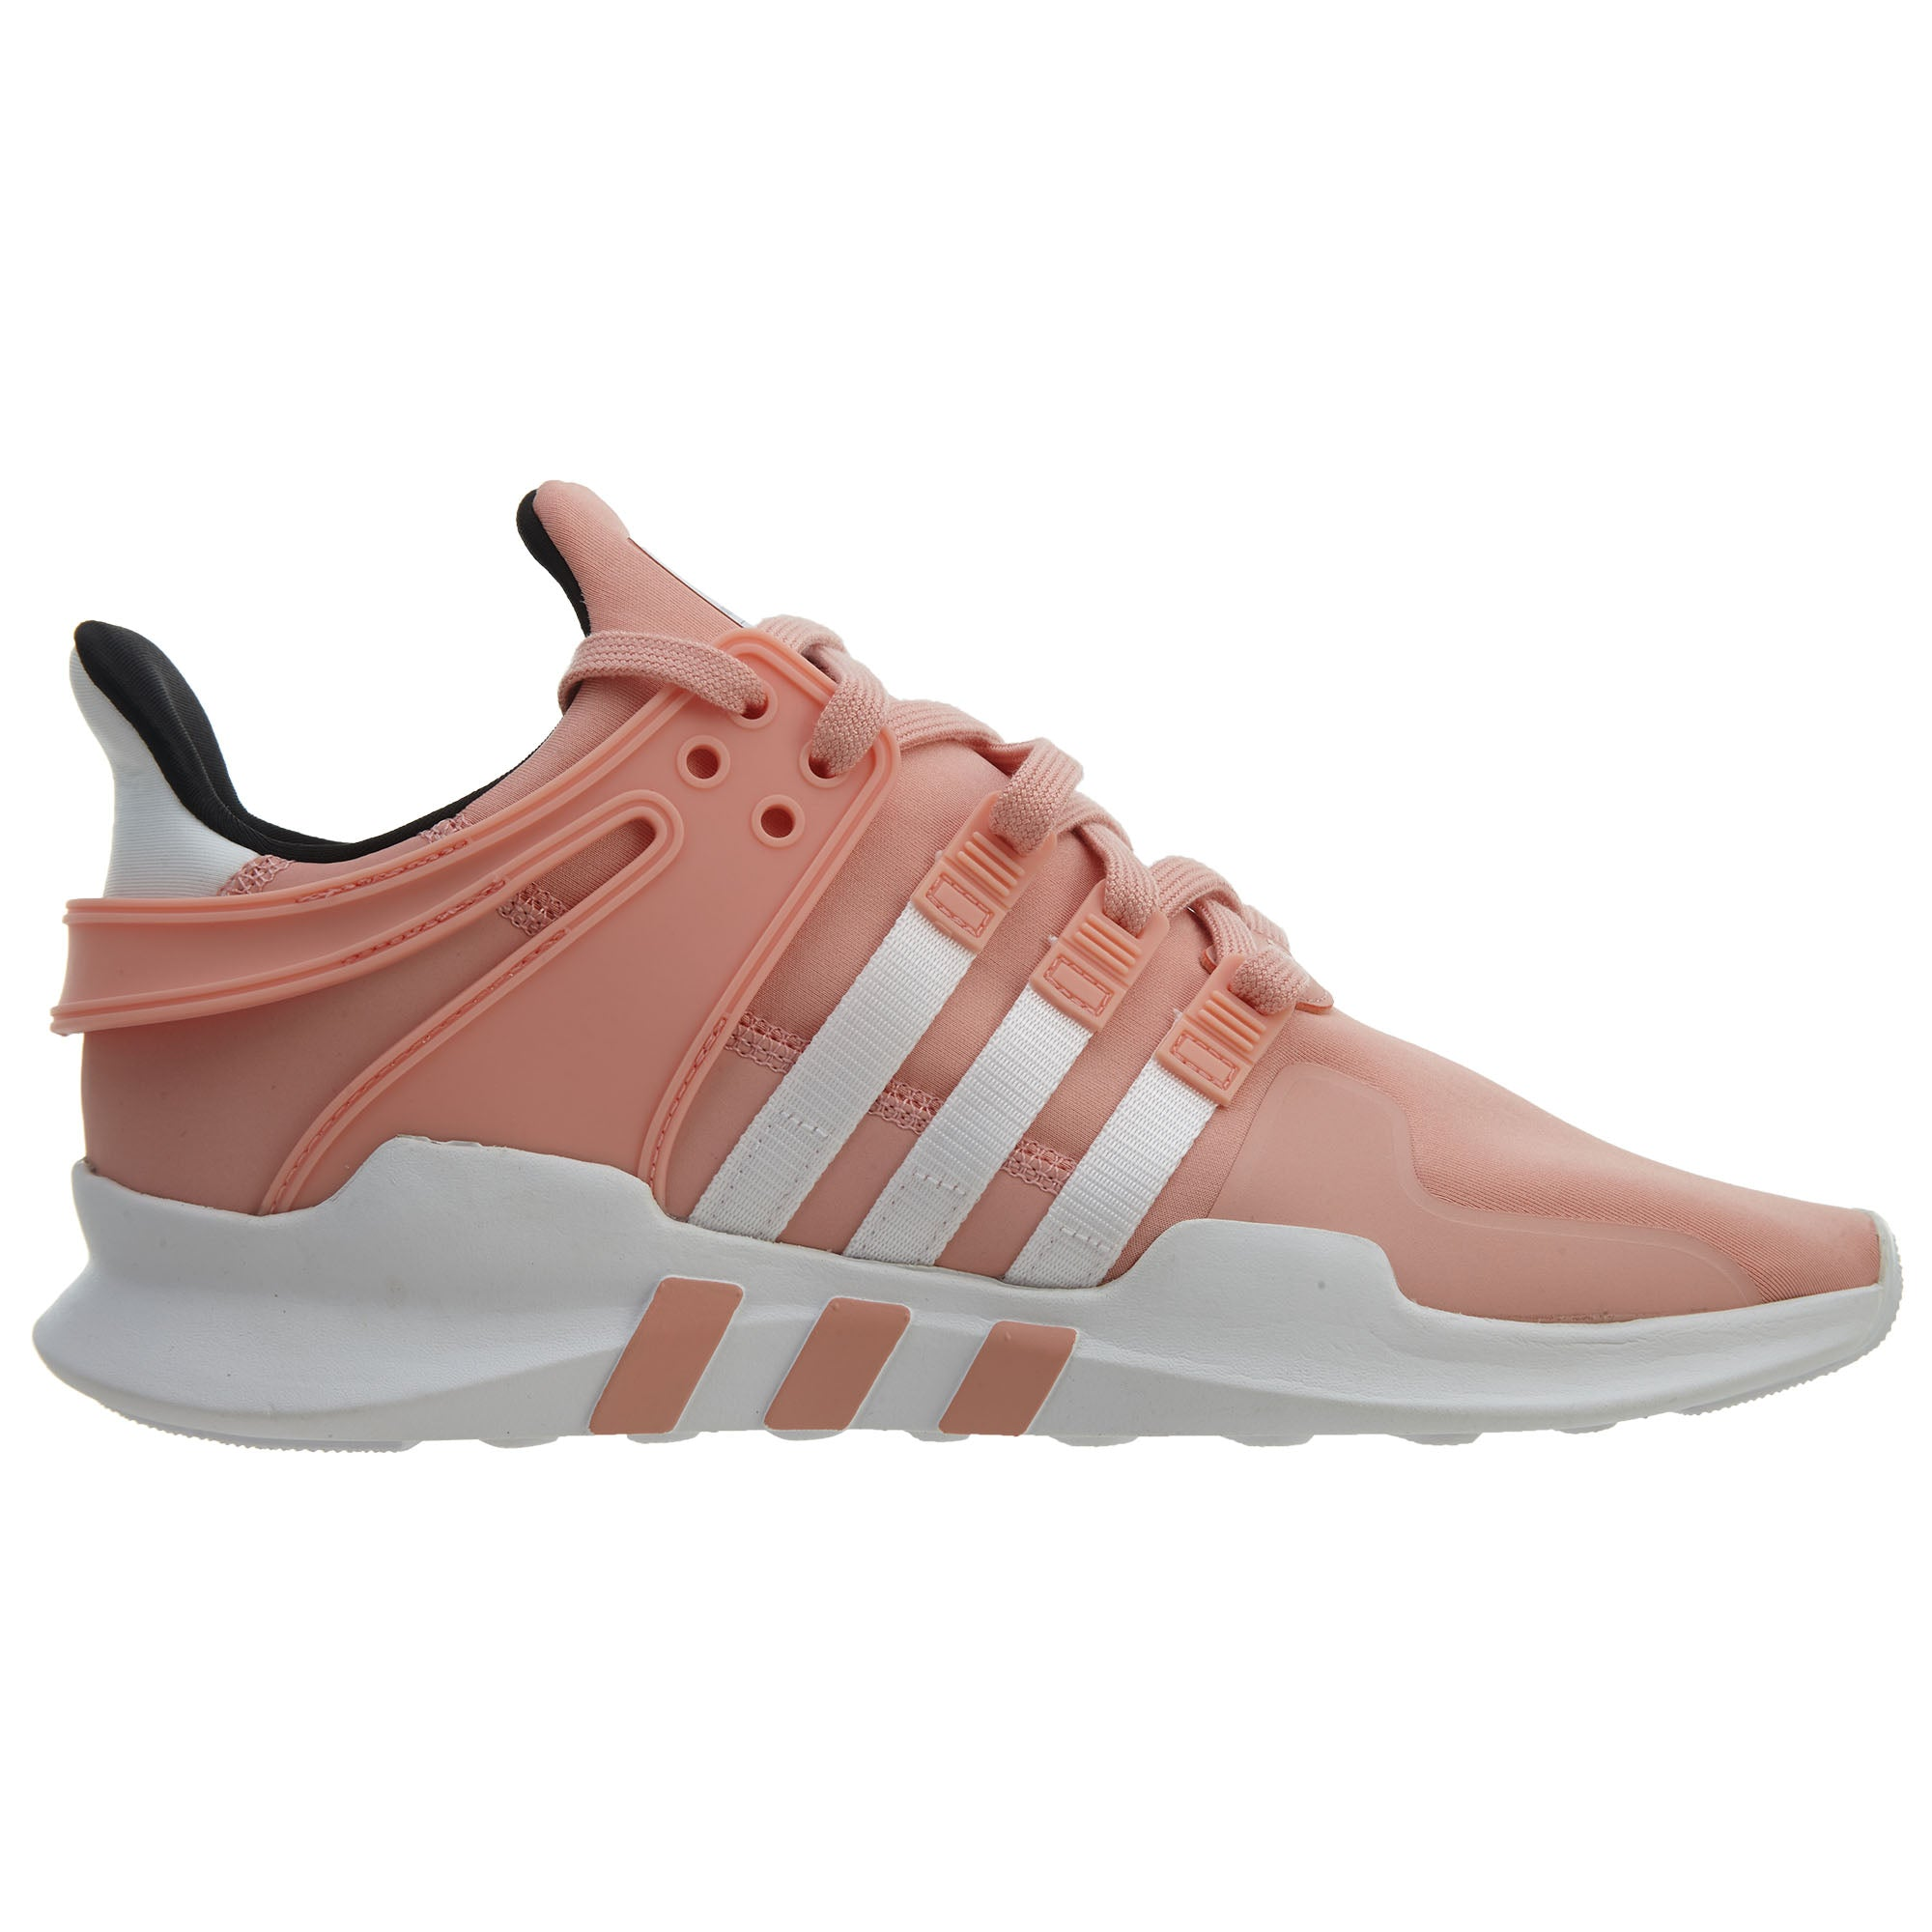 Adidas Eqt Support Adv Mens Style : B37350